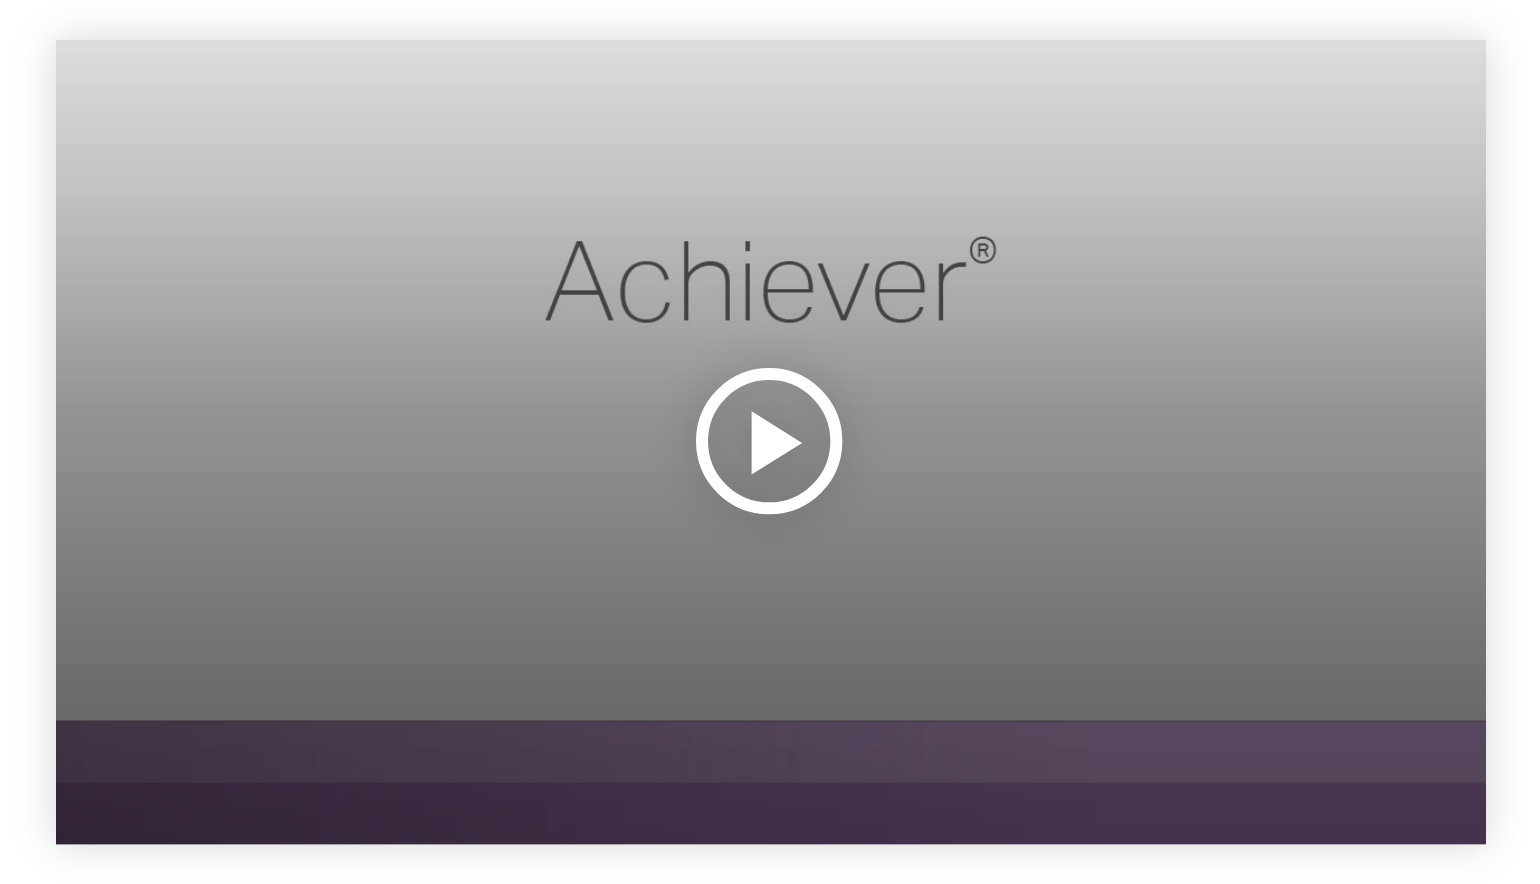 Play video - Achiever - Learn more about your innate talents from Gallup's Clifton StrengthsFinder!